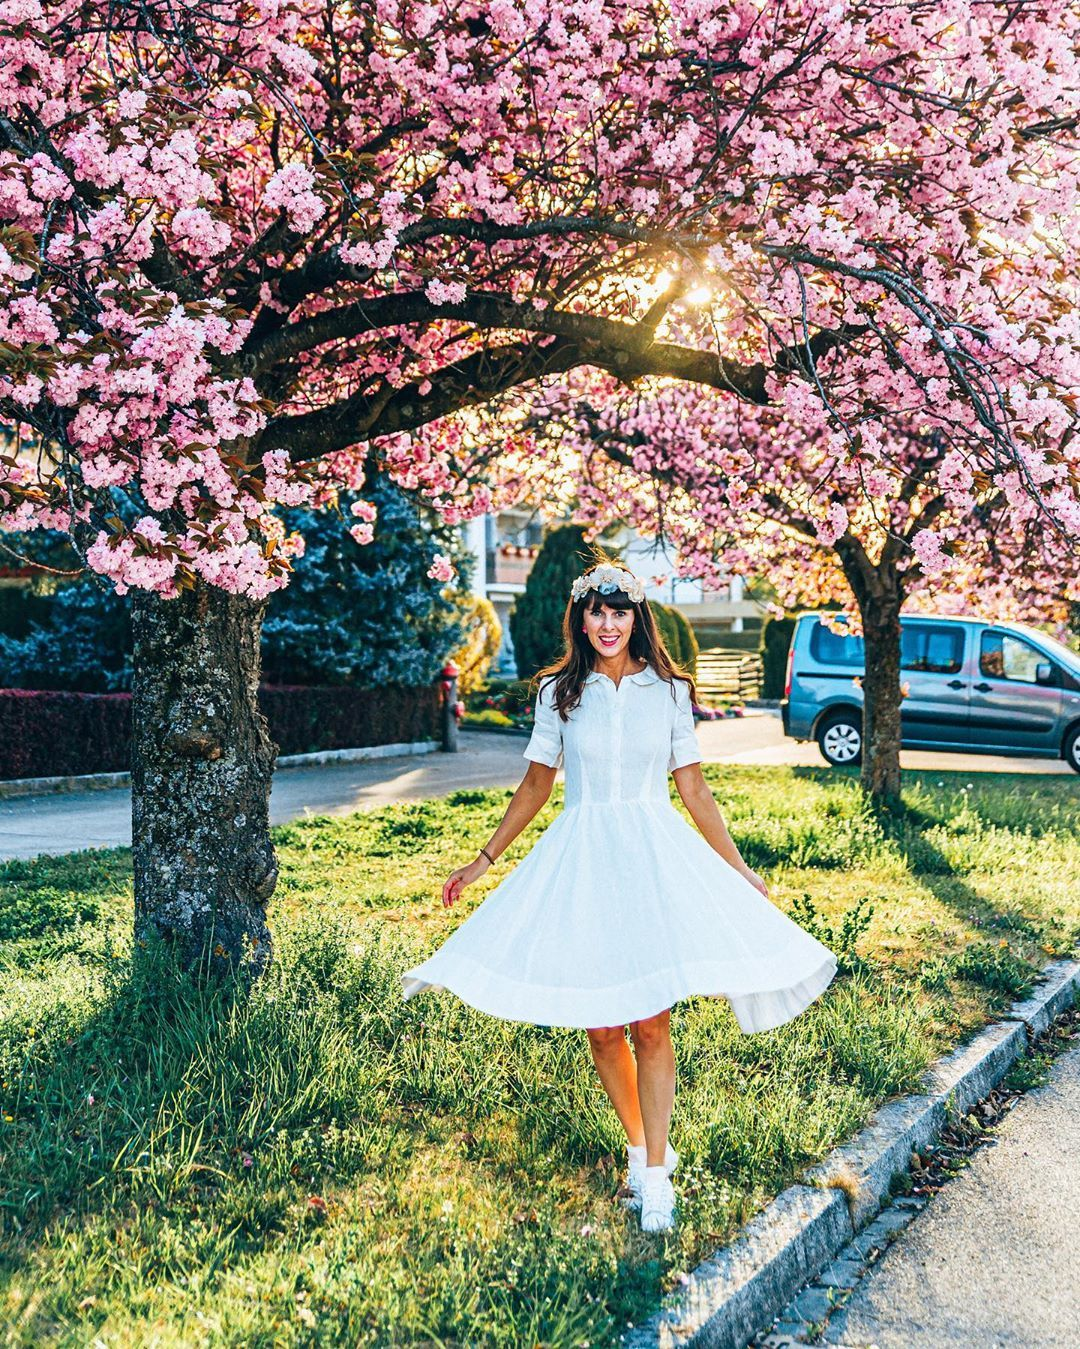 Talia Chicago Travel On Instagram In Love With Cherry Blossom Wanted To Wish You Guys A Wonderful Weekend And H Chicago Travel Cherry Blossom Wonder